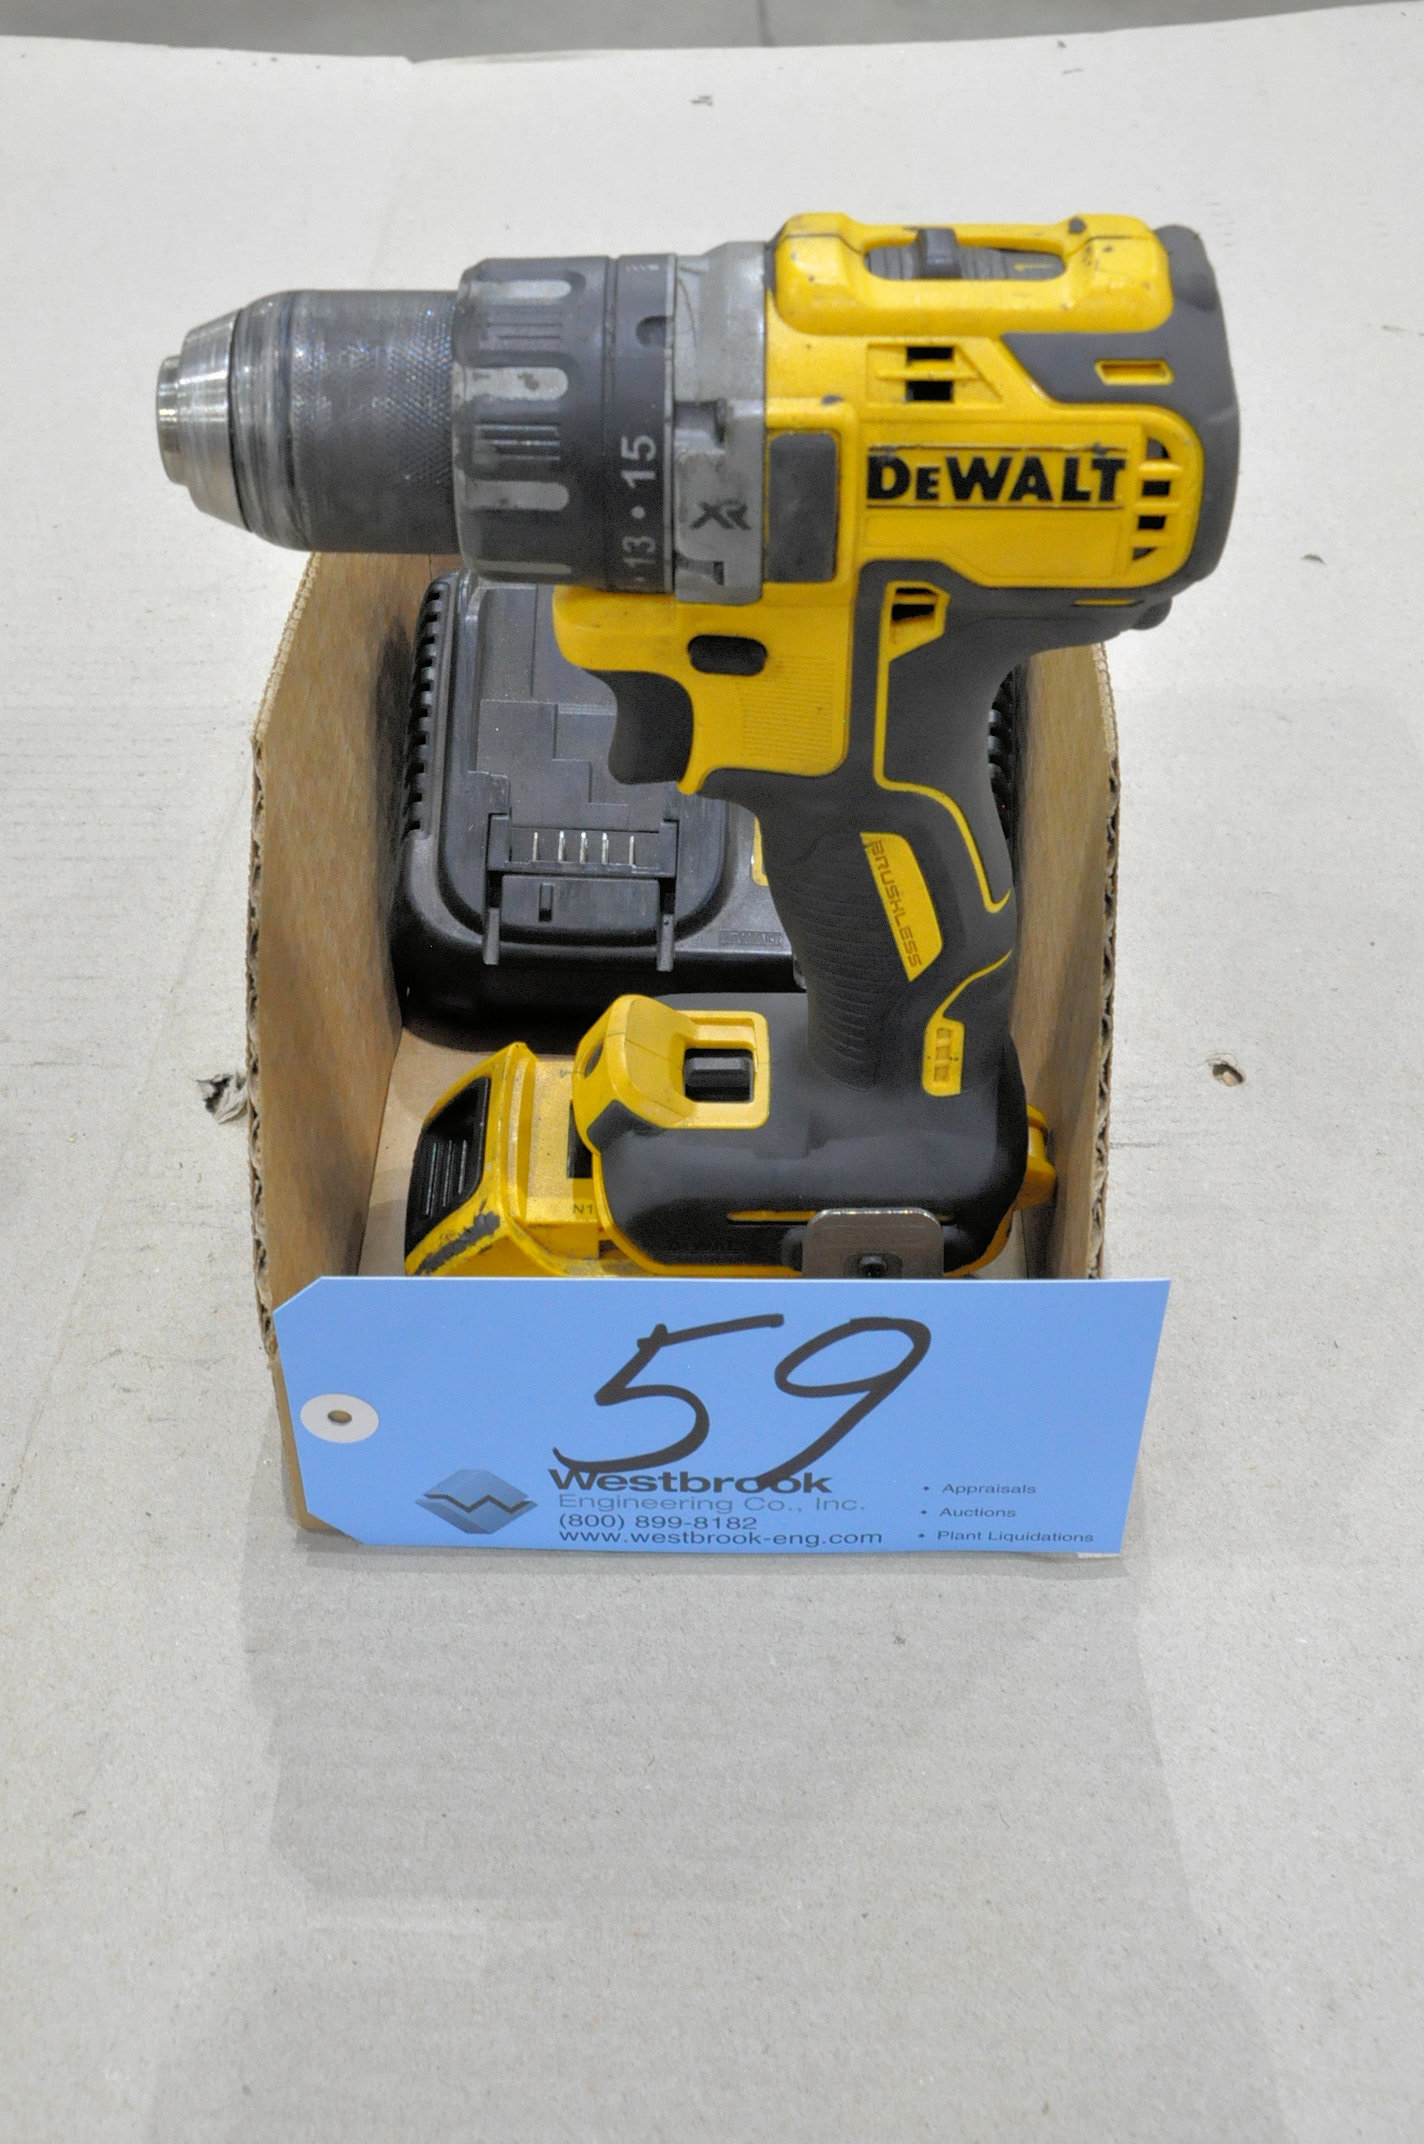 DeWalt 20V Cordless Drill with Battery and Charger in (1) Box